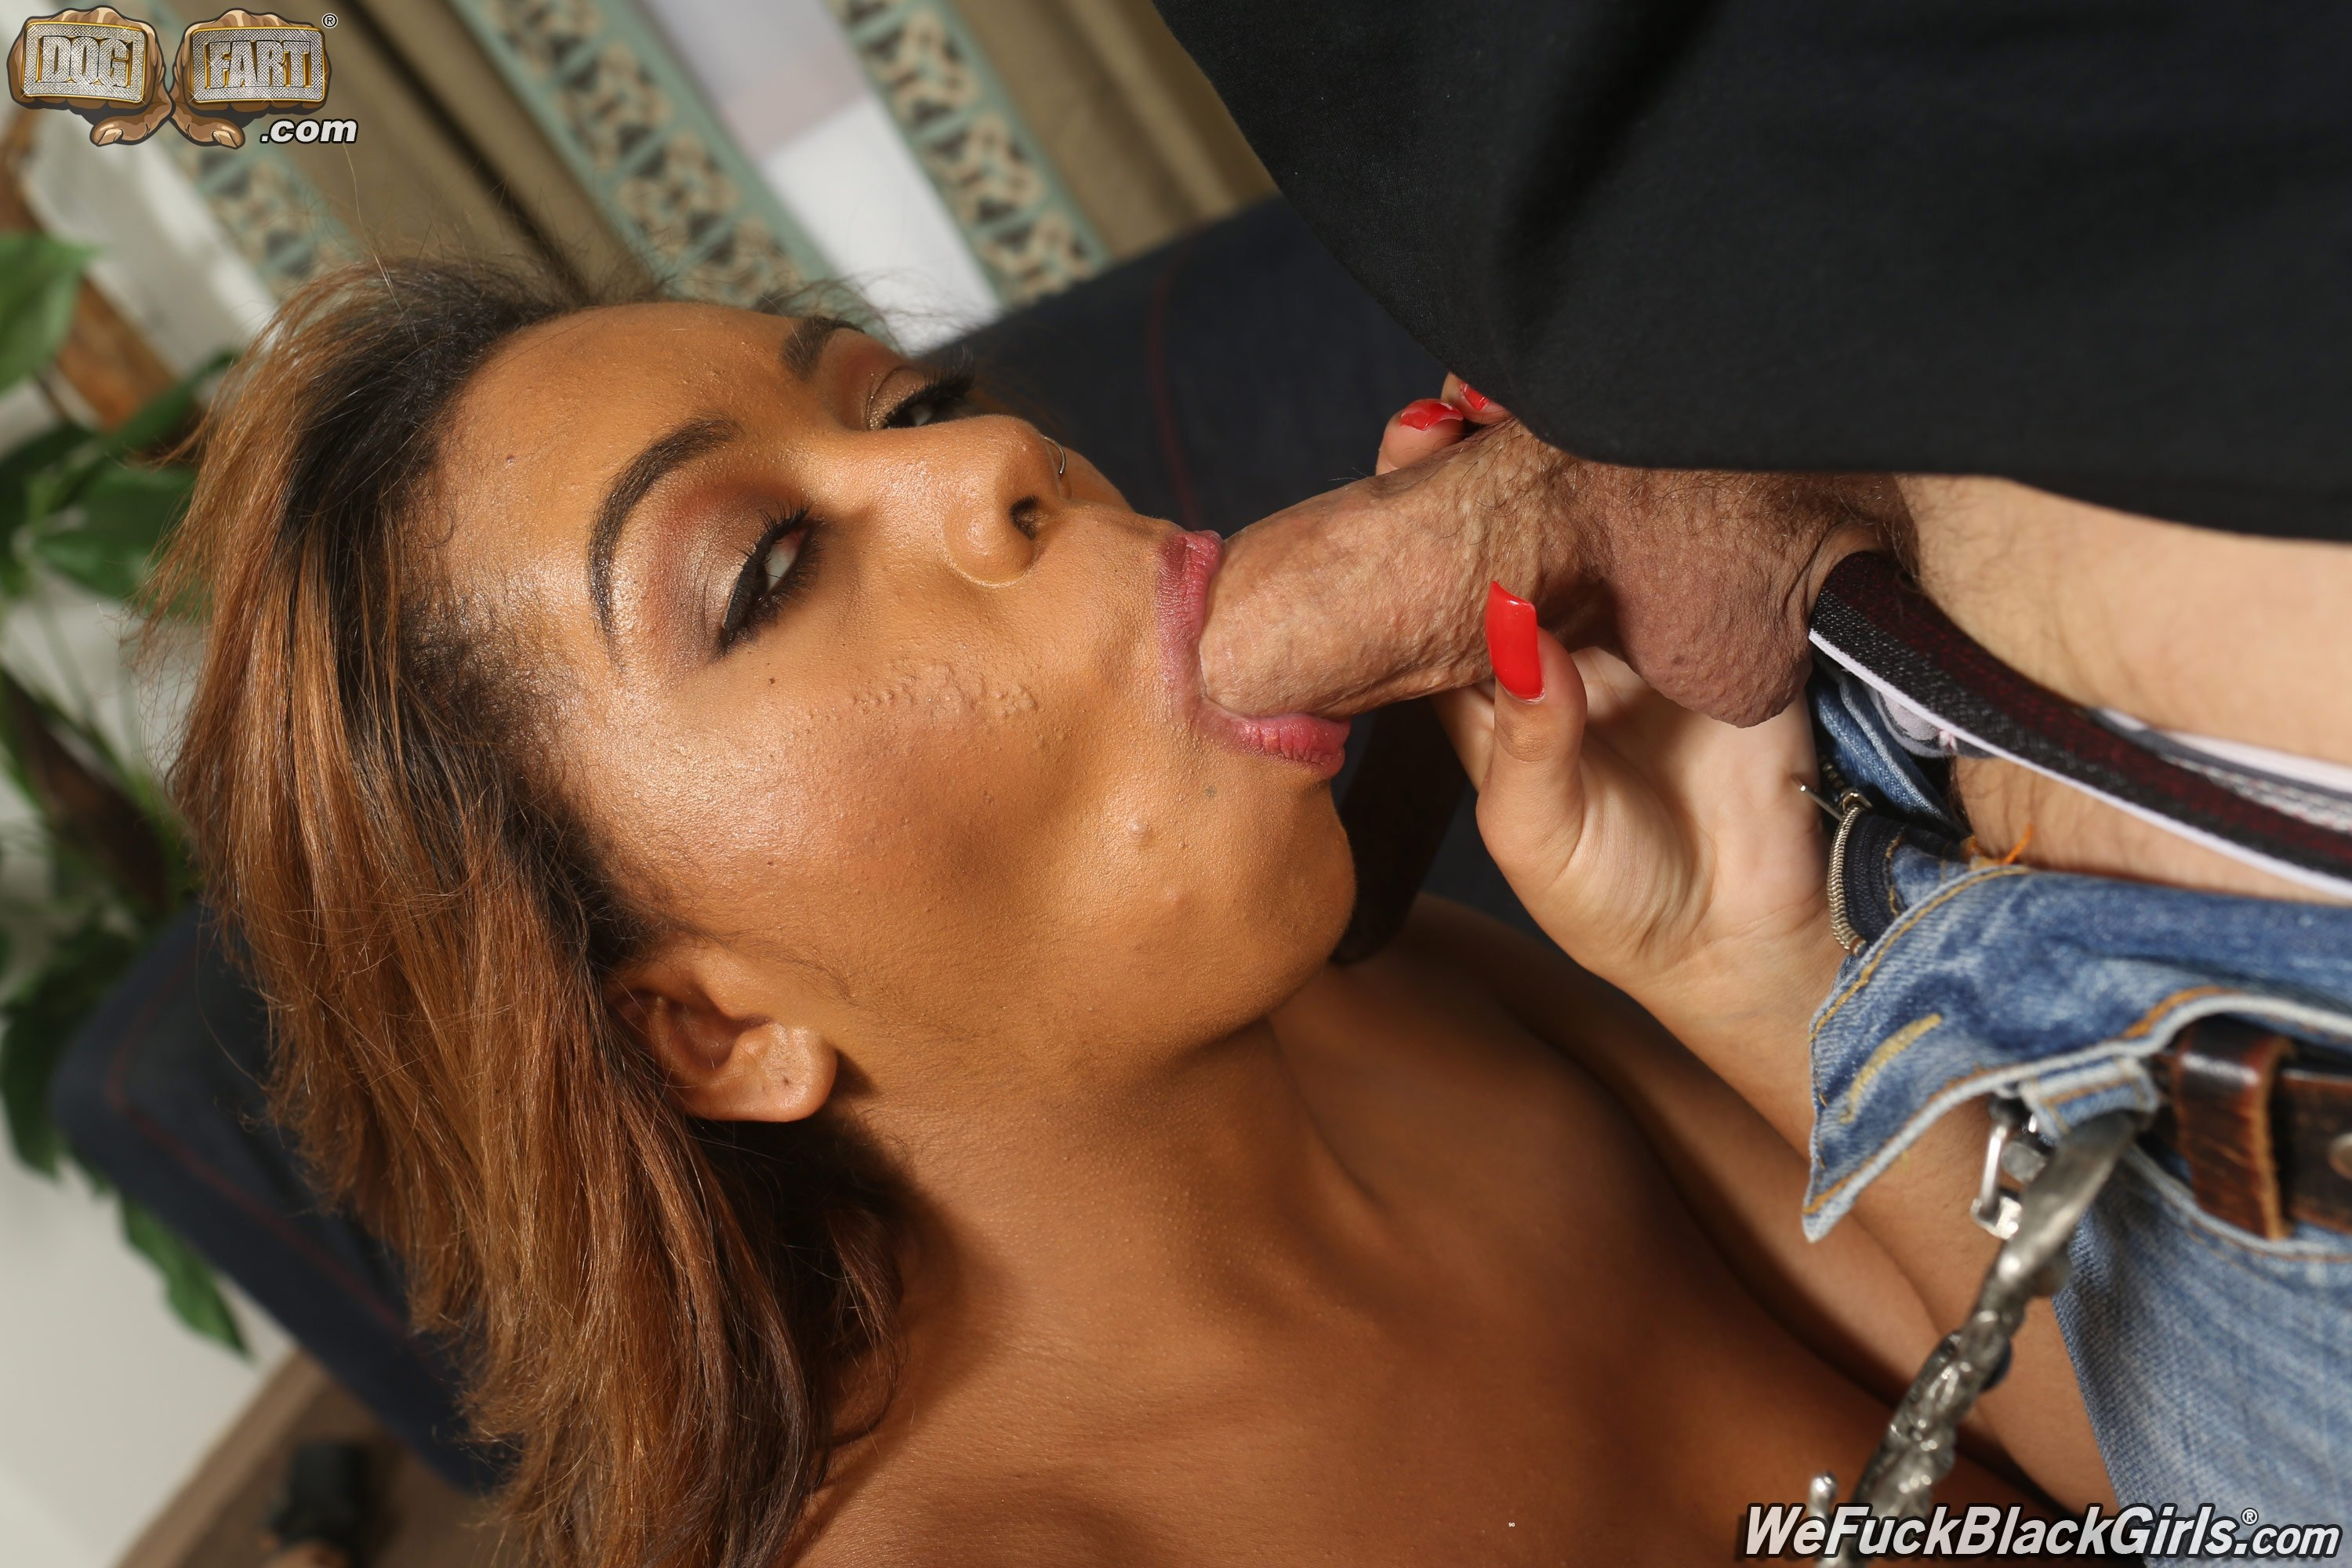 Xvideos french anal #1